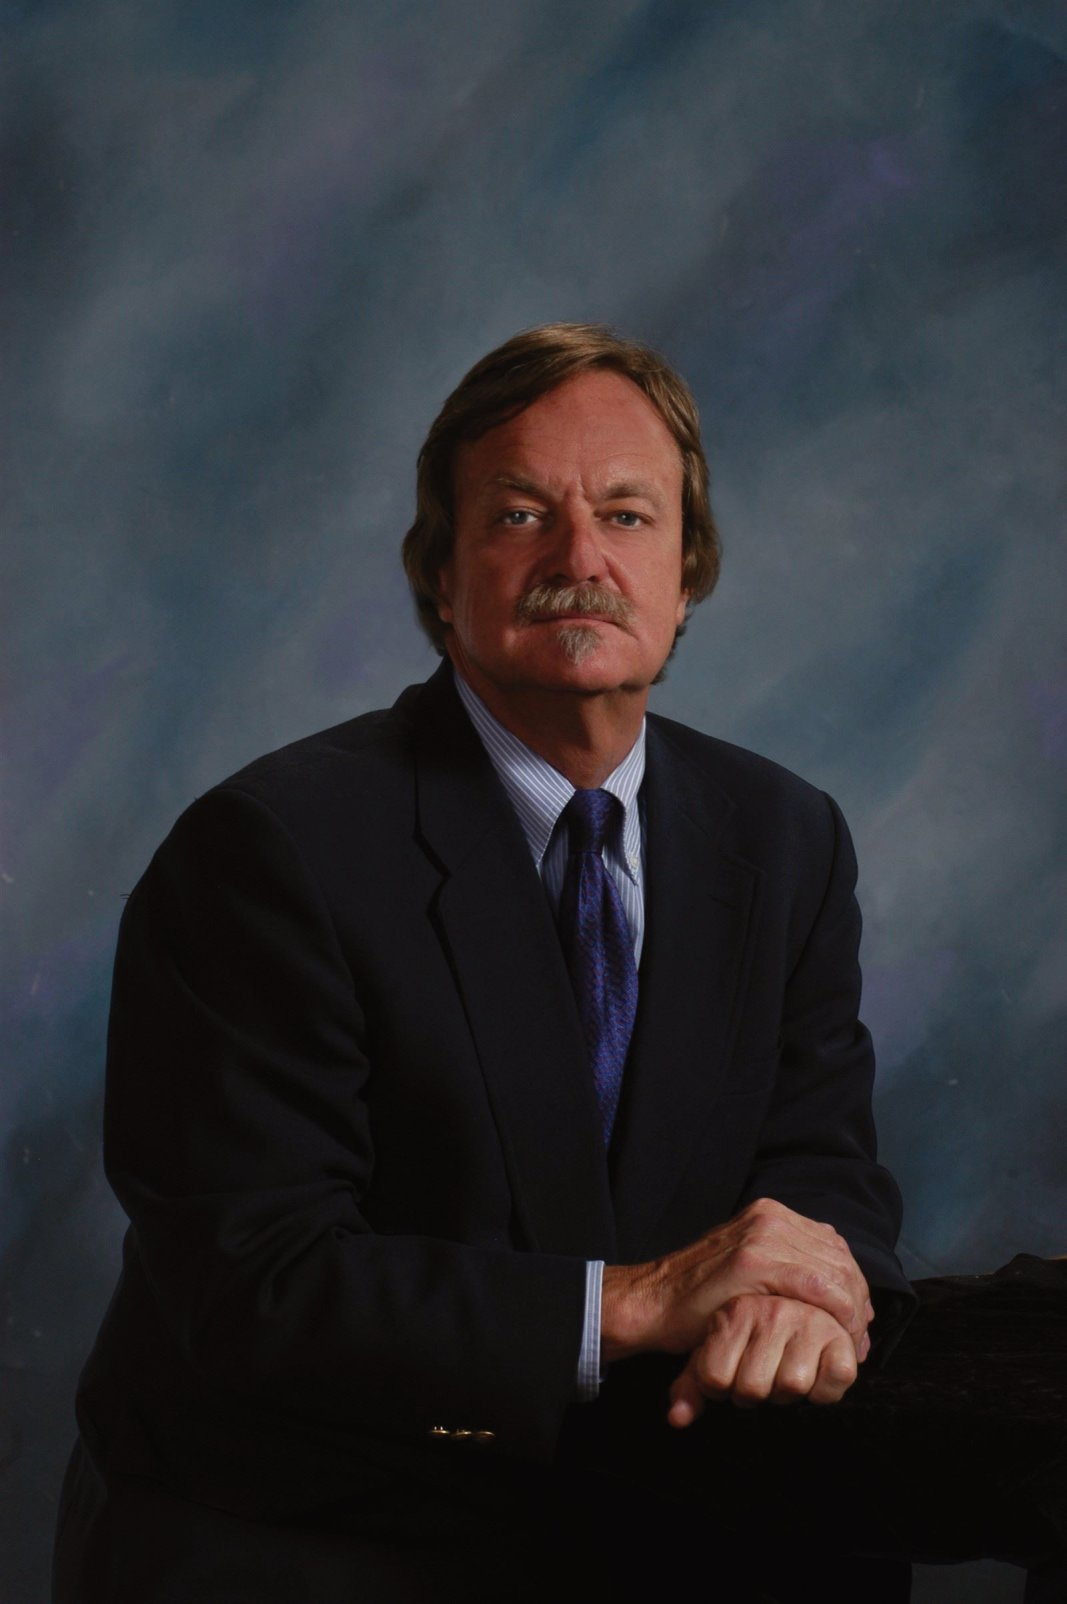 Dr. Michael Murrell in his offices at 1358 E. Kingsley, ste. B, Springfield, MO 65804.